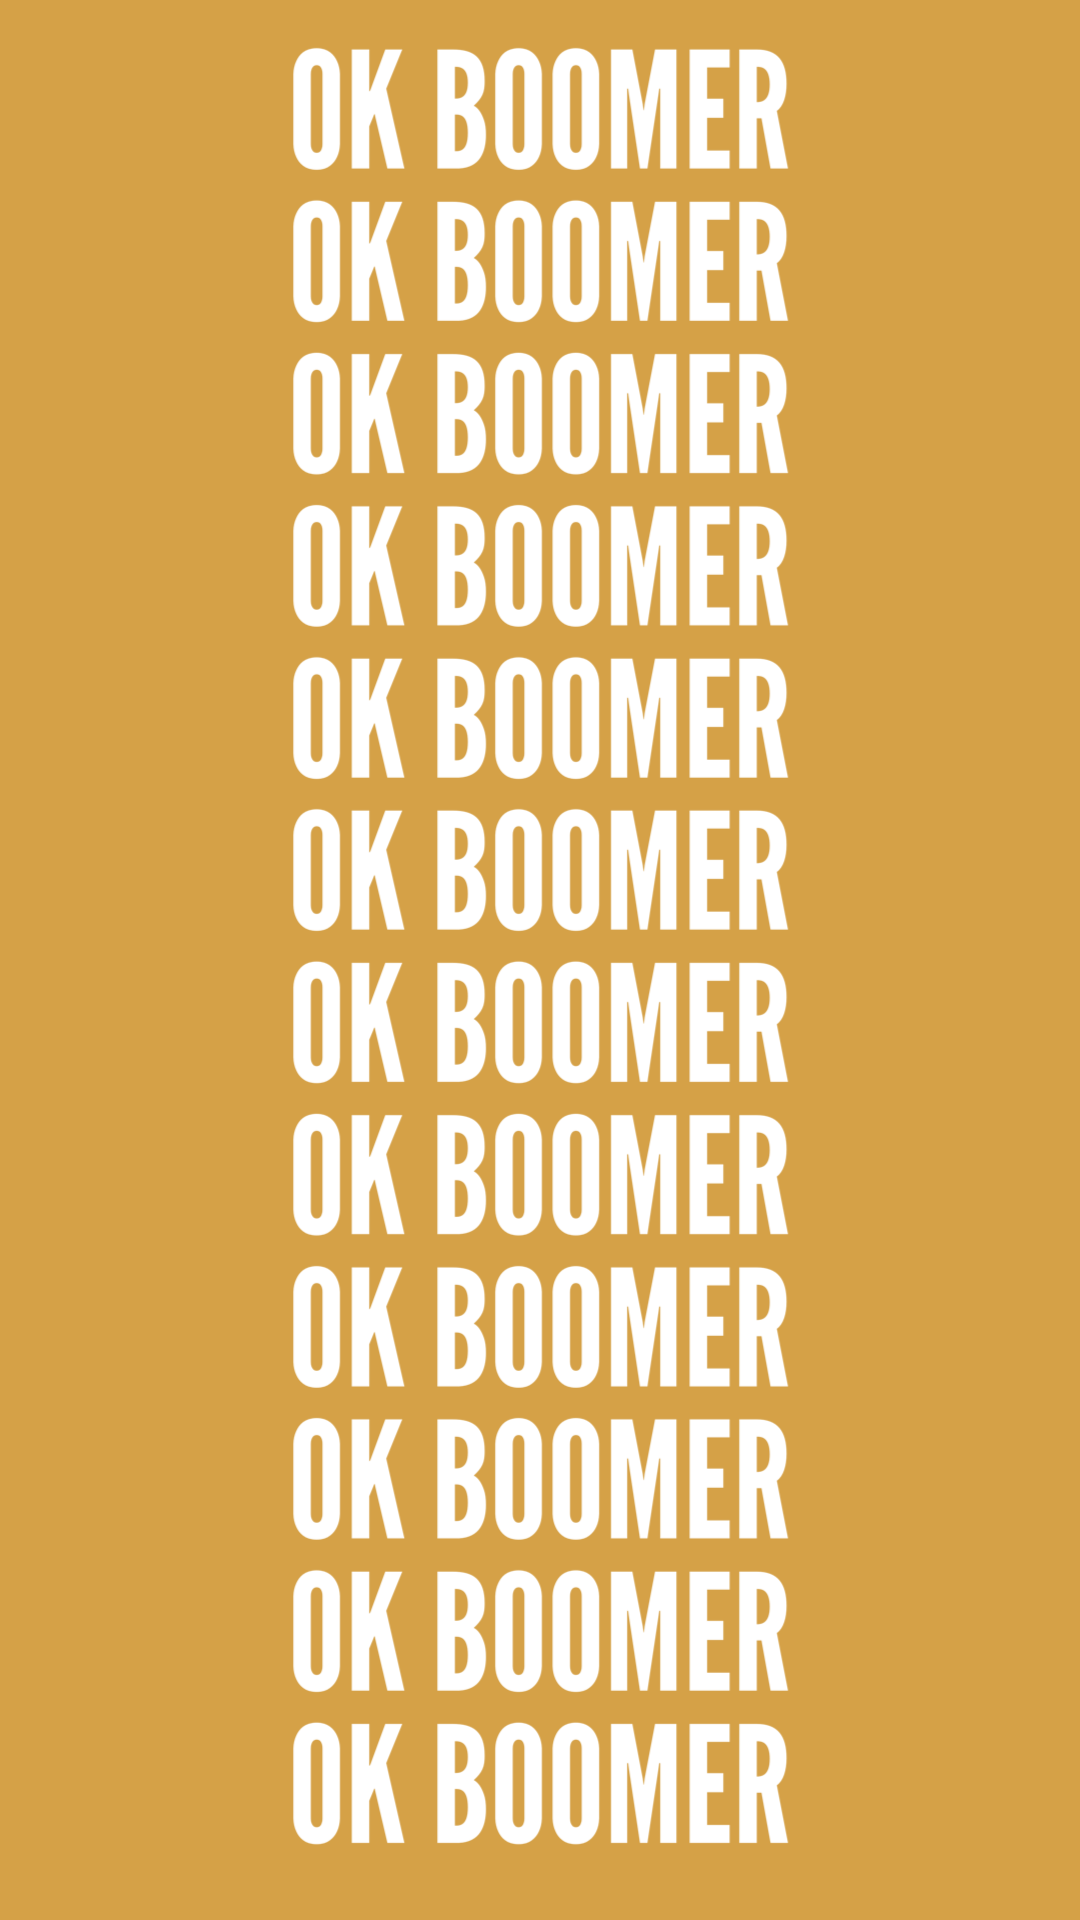 ok boomer wallpaper okboomer Iphone wallpaper pattern